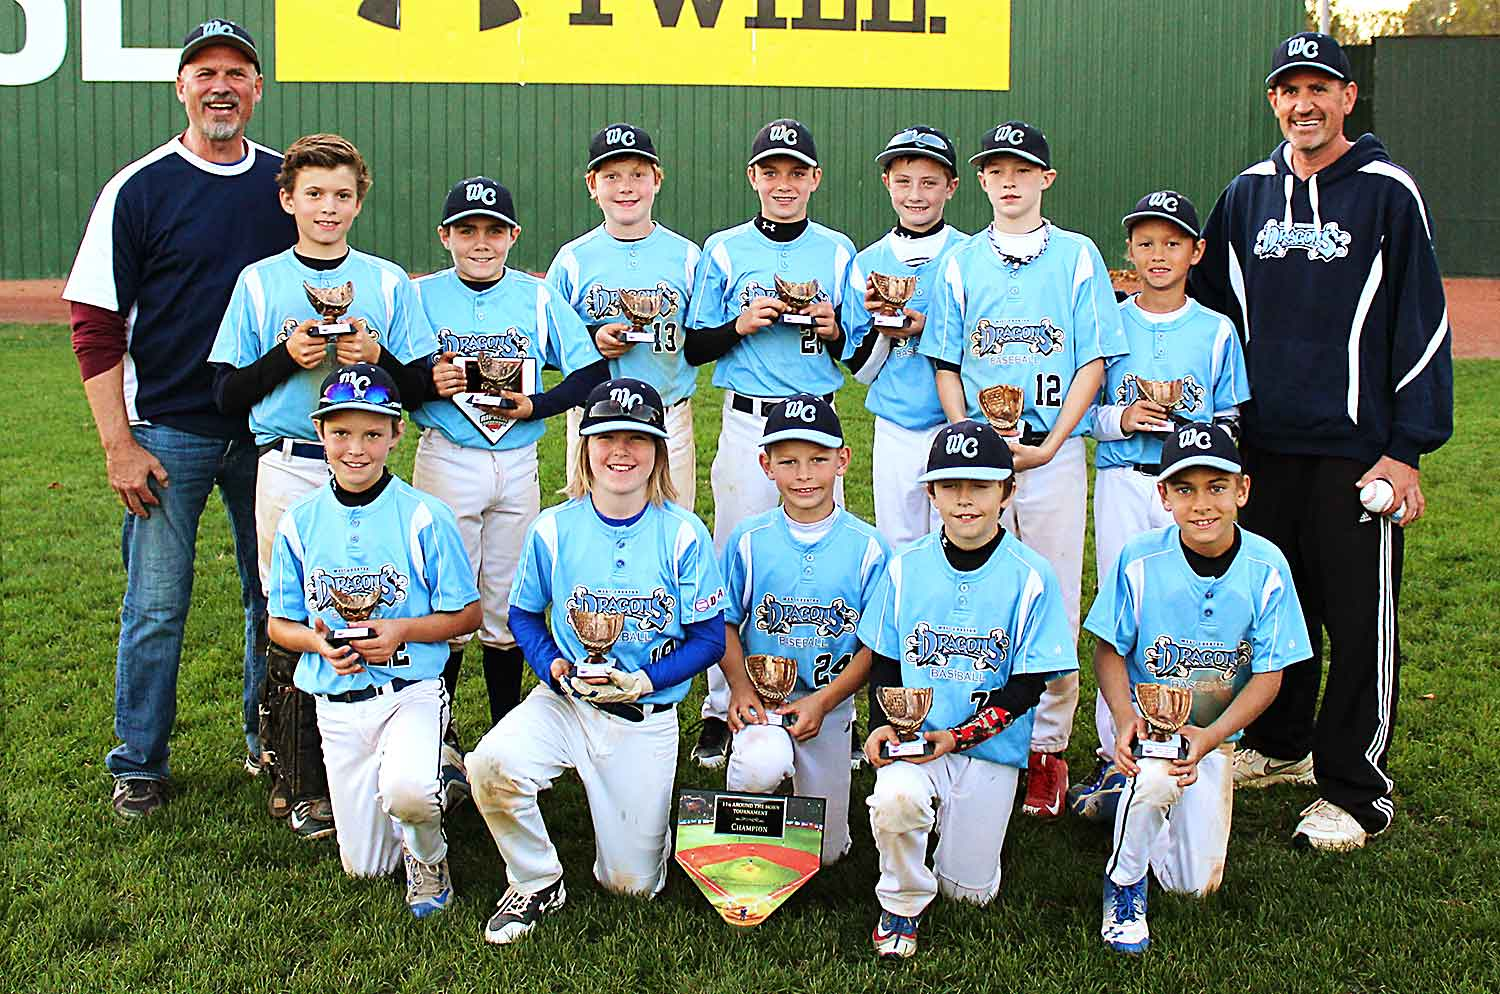 11U West Chester Dragons NL baseball team won The Ripken Experience